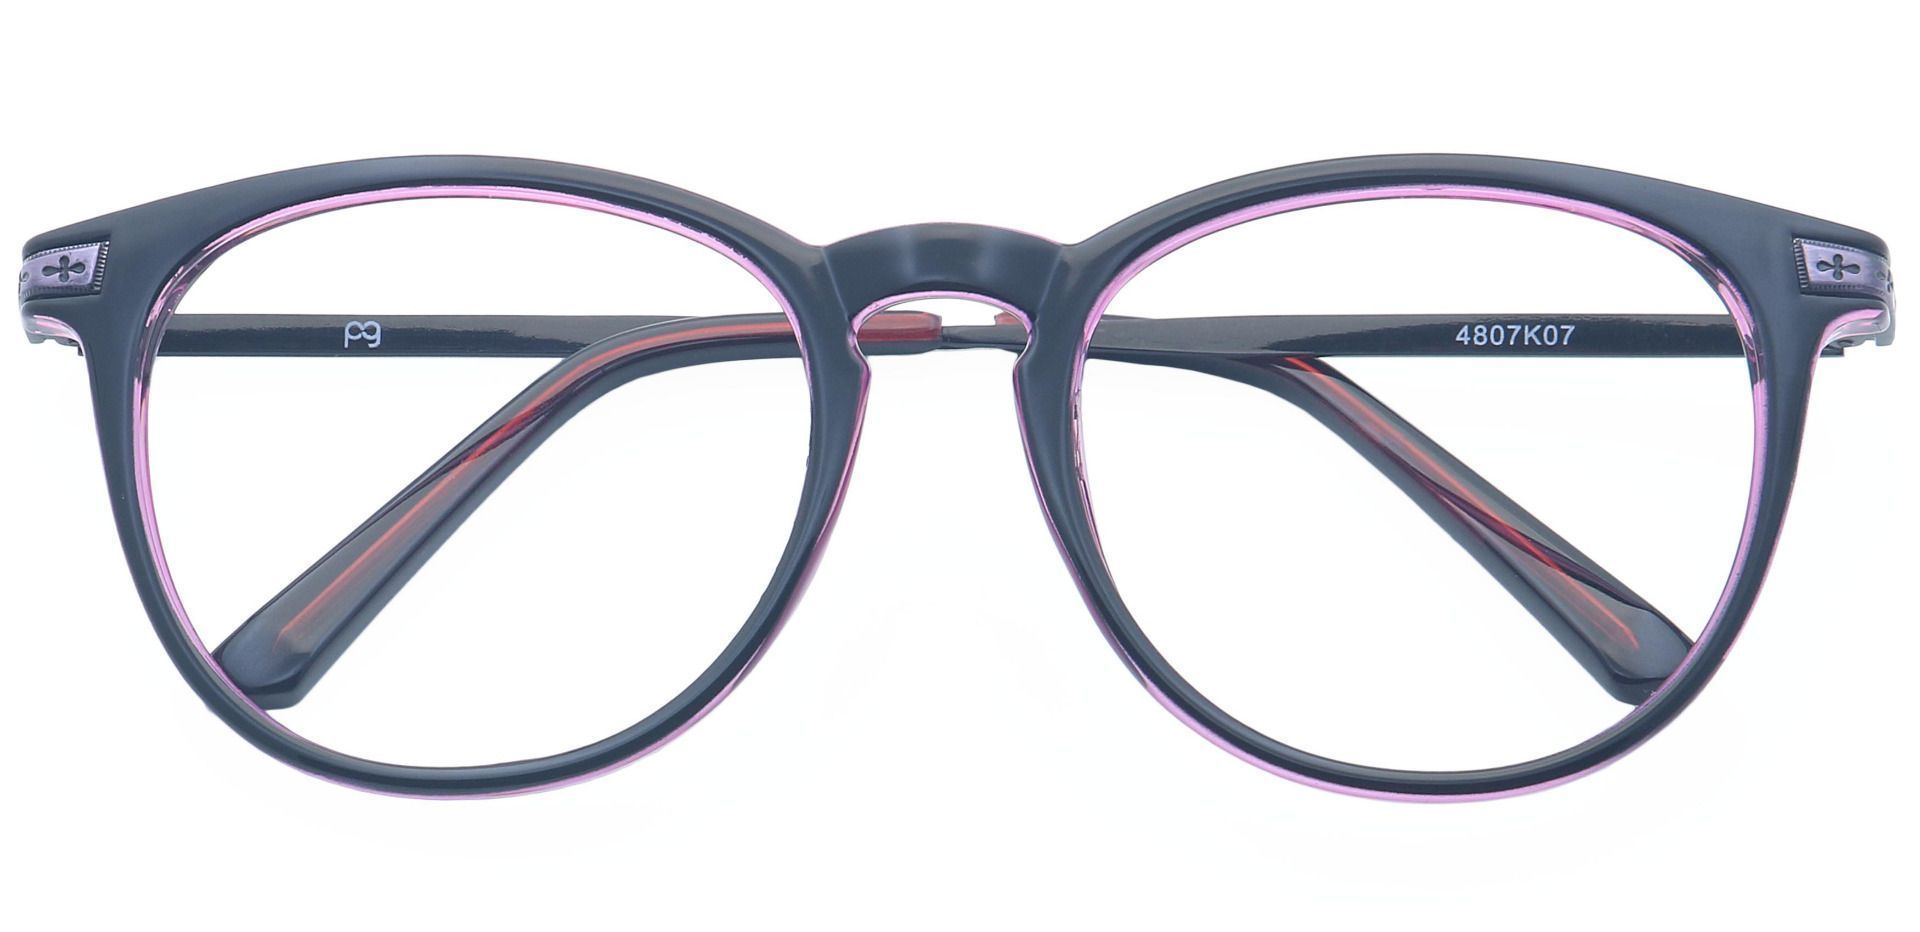 Honey Oval Prescription Glasses - Black